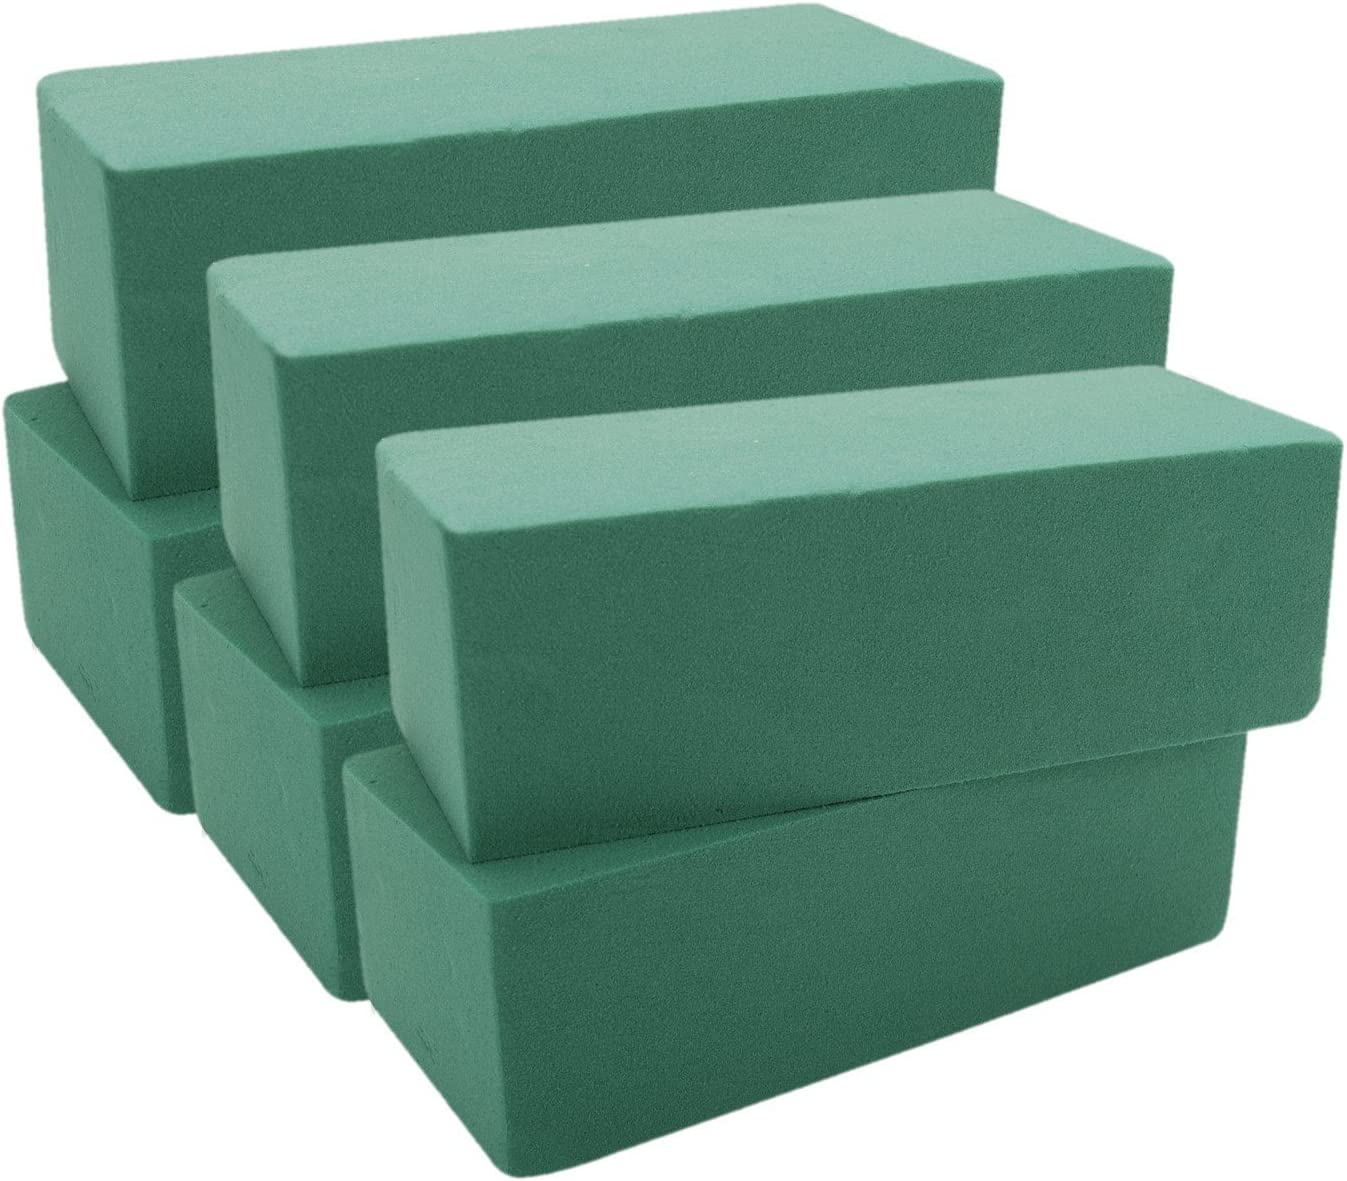 "FLORAL SUPPORT GREEN FOAM ARRANGER ROUNDS 2 PK . 2 4/"" W X 2/"" H NEW!! LOT OF"